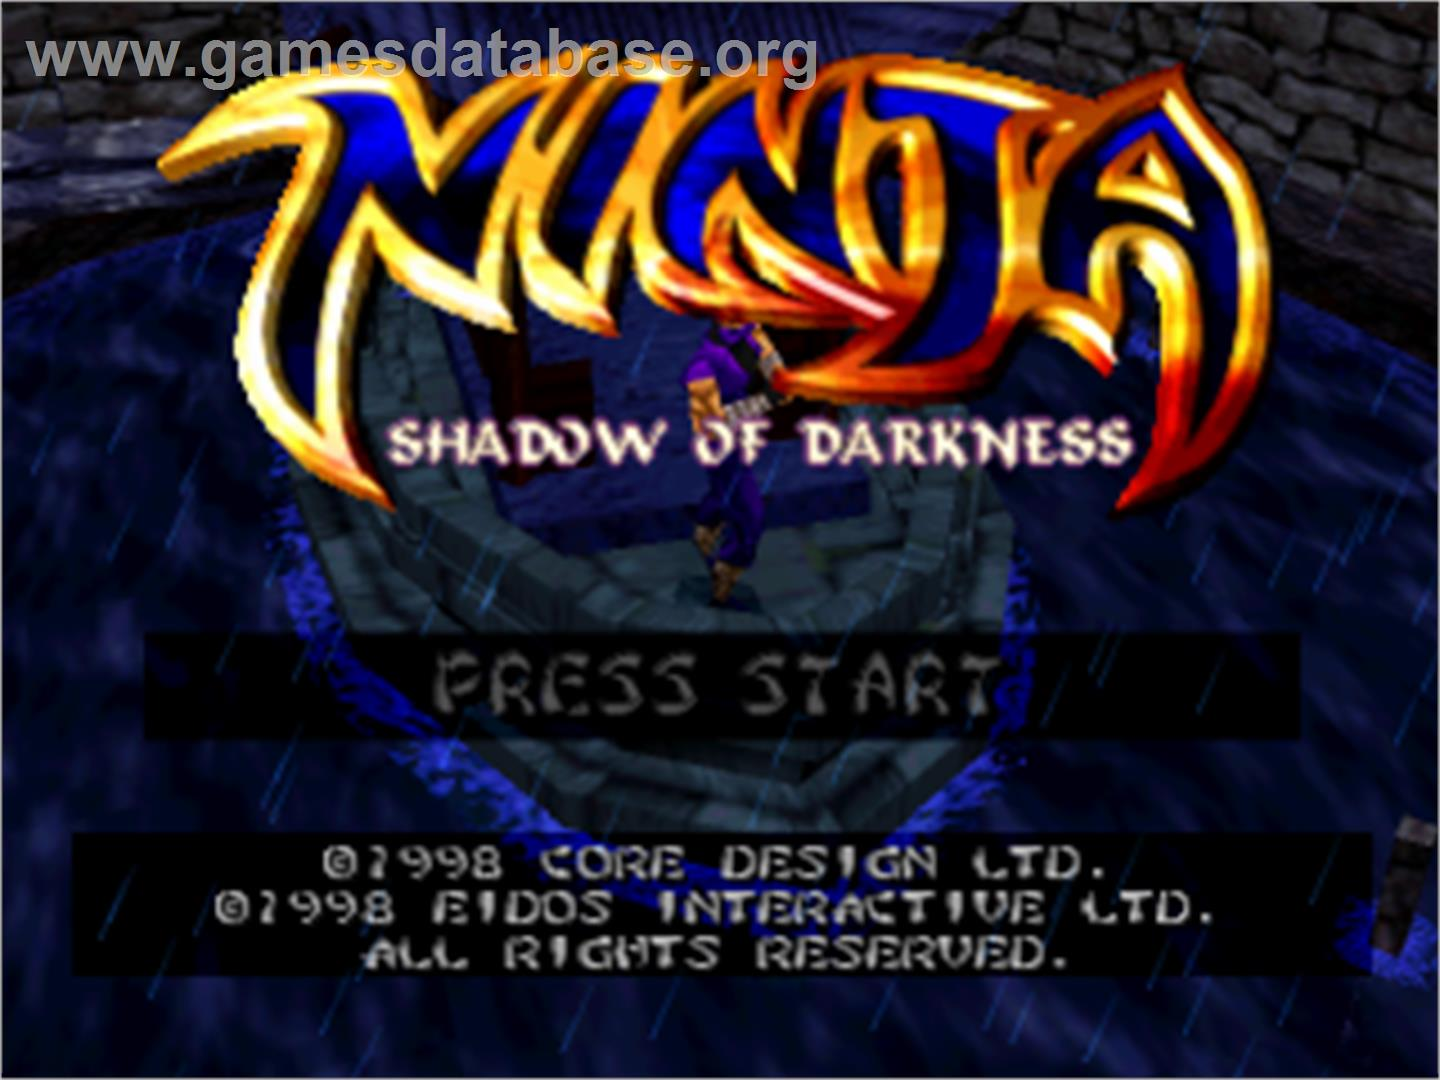 Ninja: Shadow of Darkness - Sony Playstation - Artwork - Title Screen